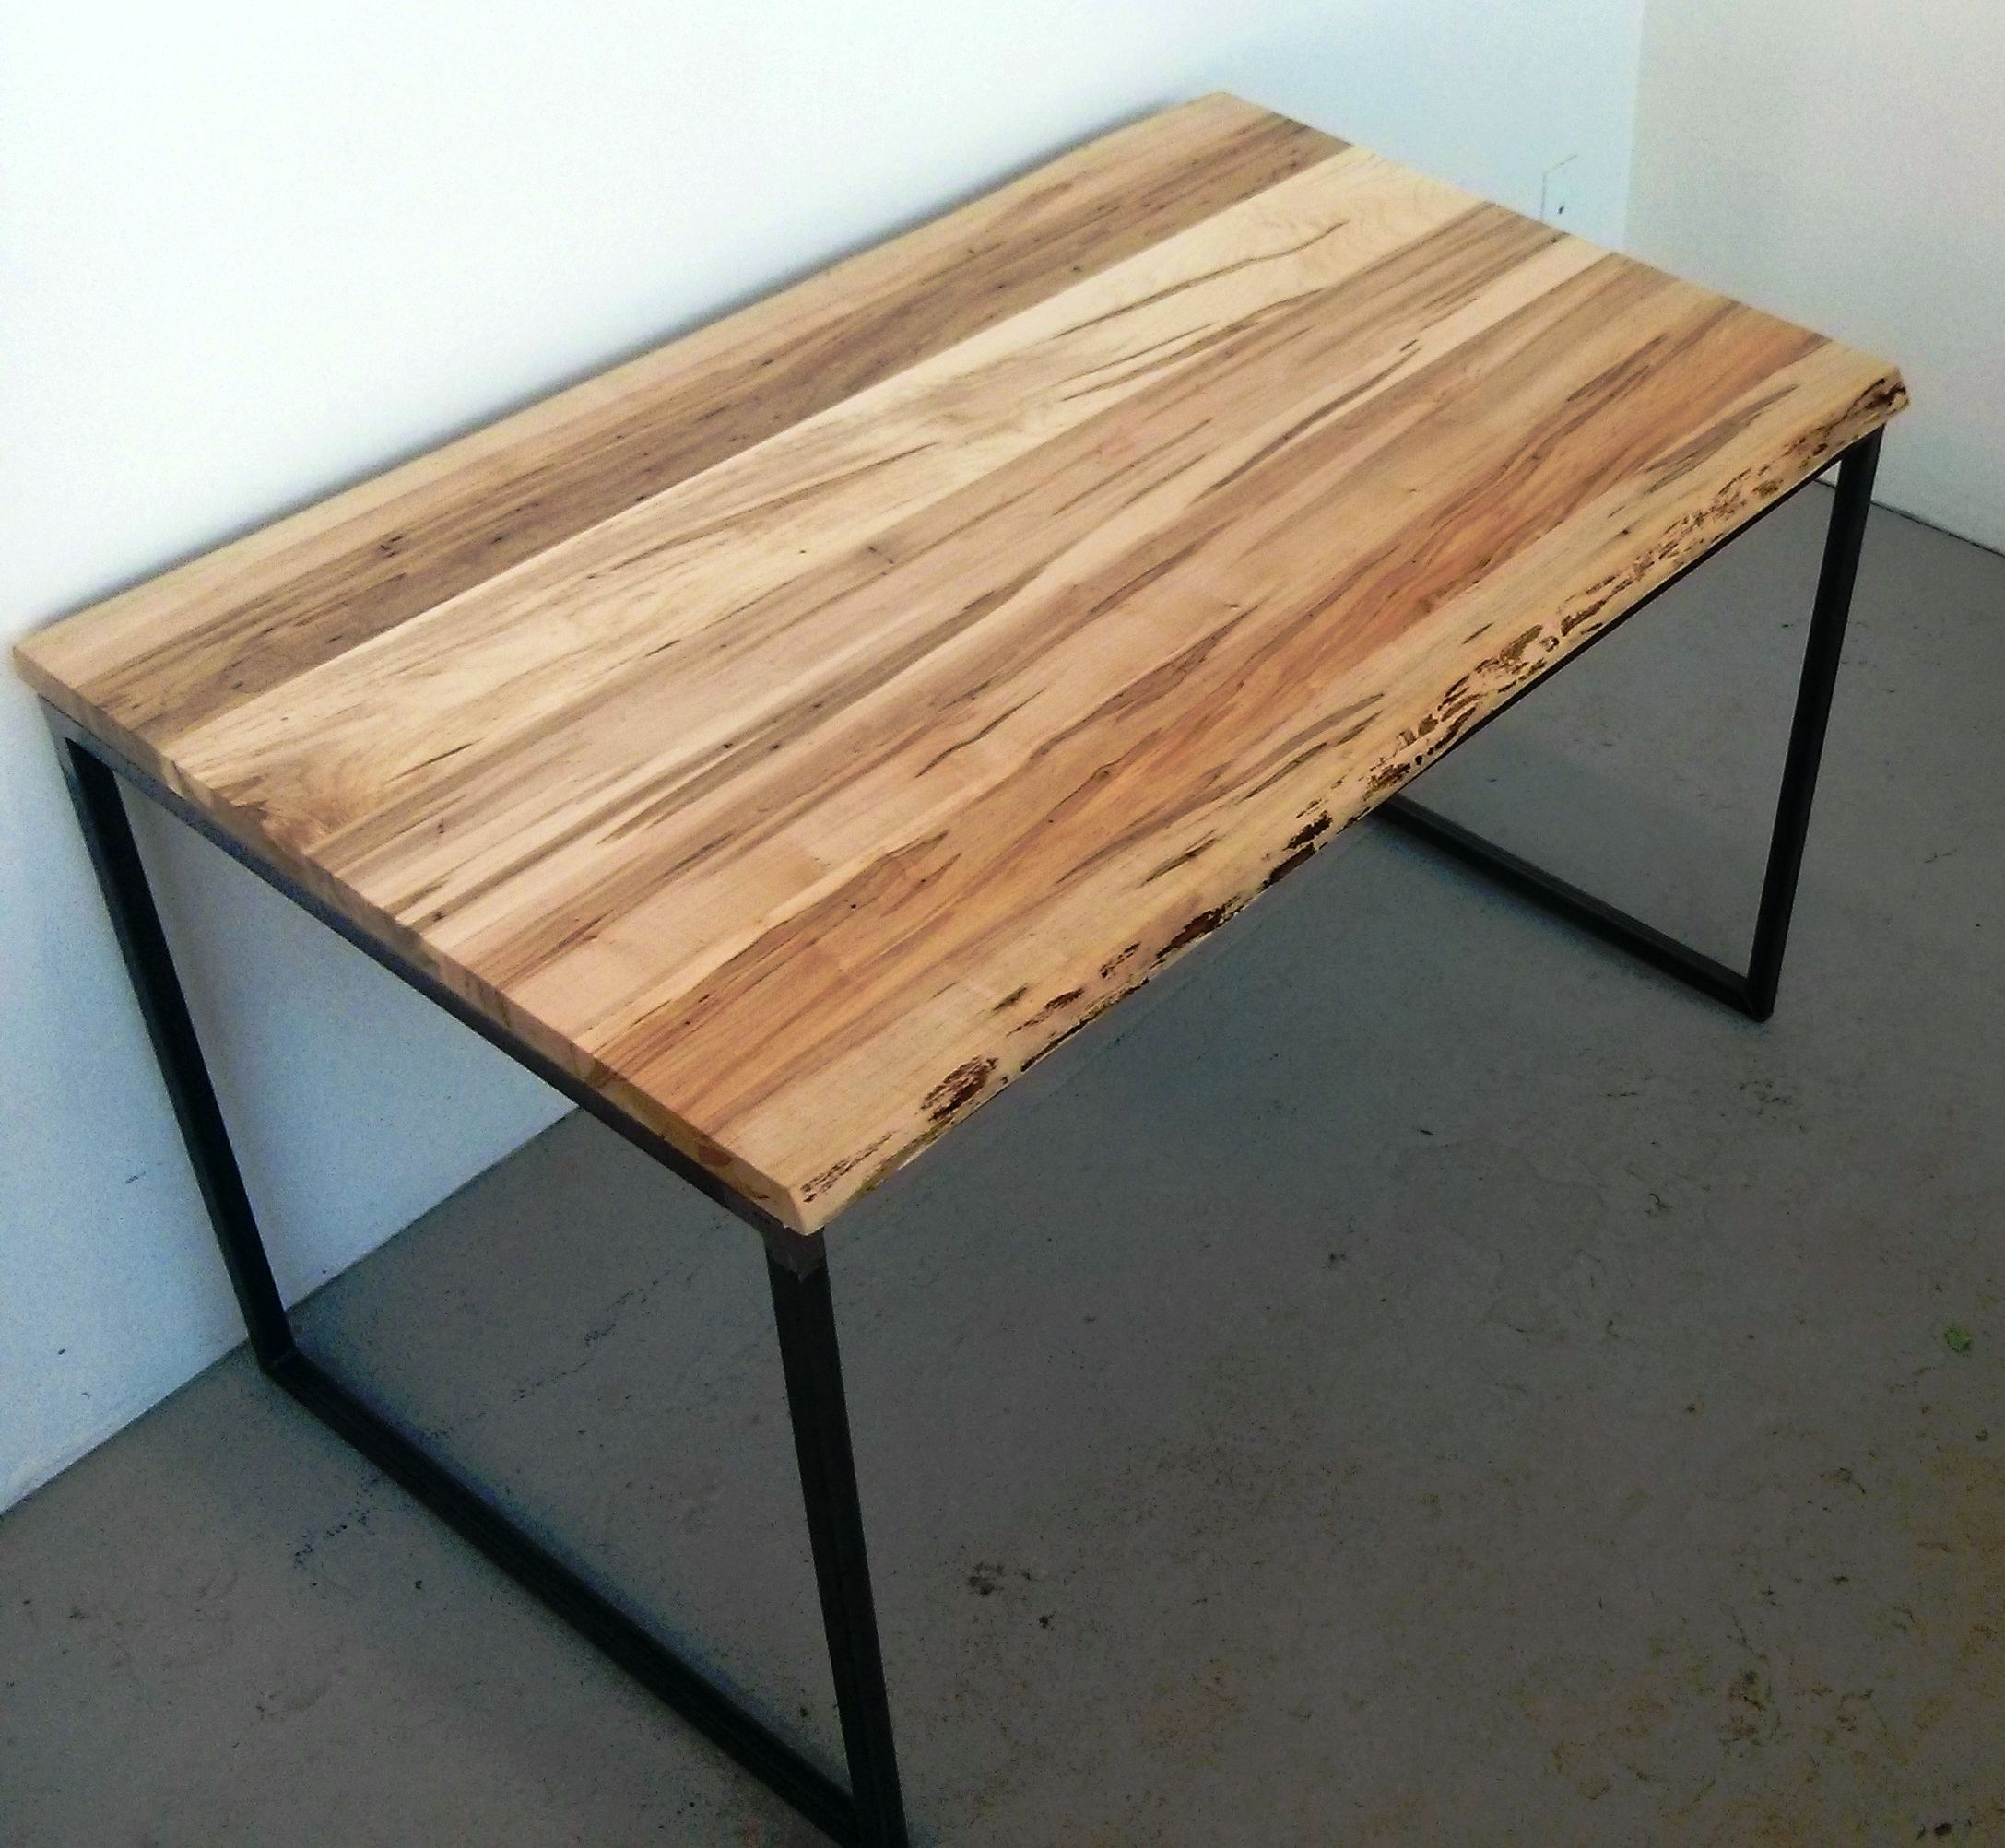 Delicieux Live Edge Dining Table Inspiration For Your Room Condos